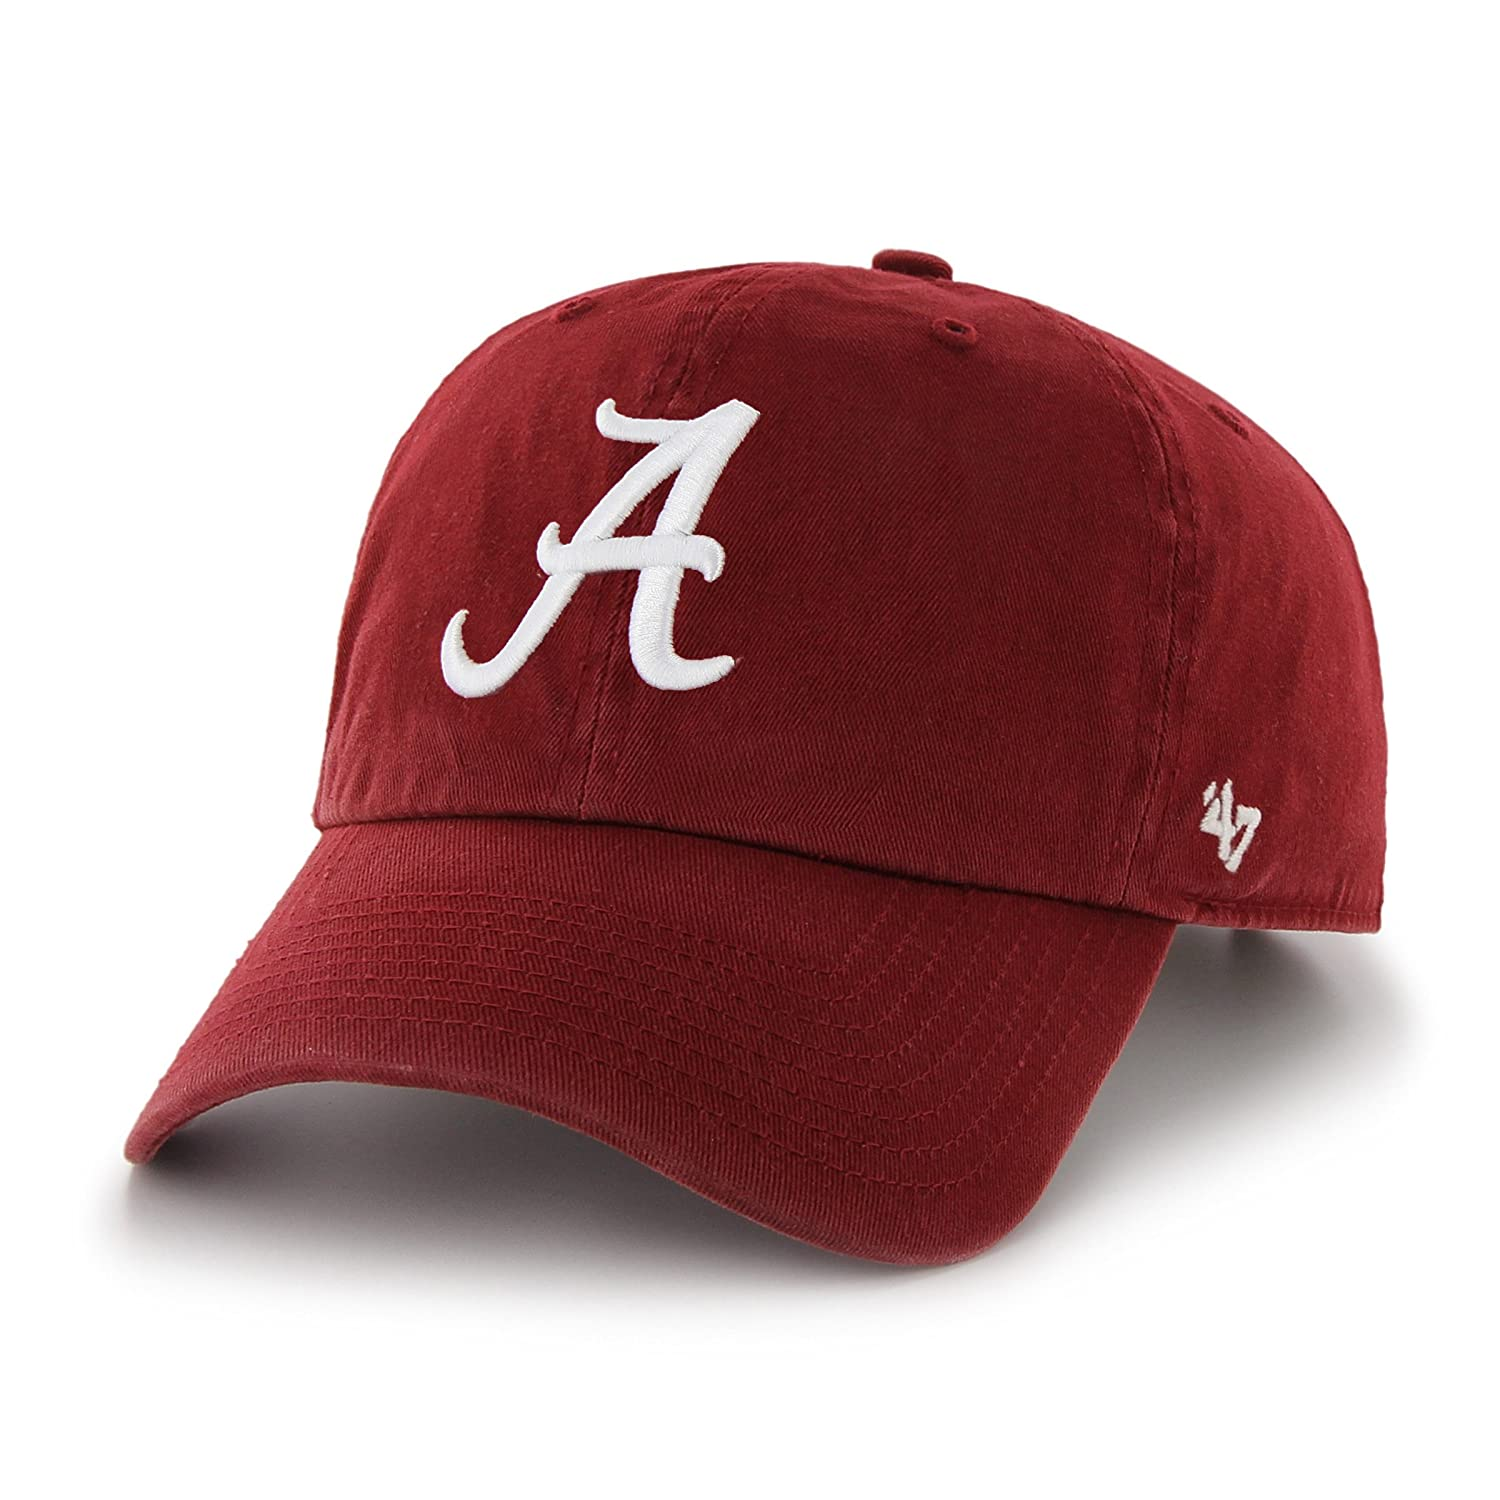 official photos 60dcf 28928 Amazon.com   NCAA Alabama Crimson Tide Men s Clean Up Cap, Razor Red 1, One  Size   Sports Fan Baseball Caps   Clothing